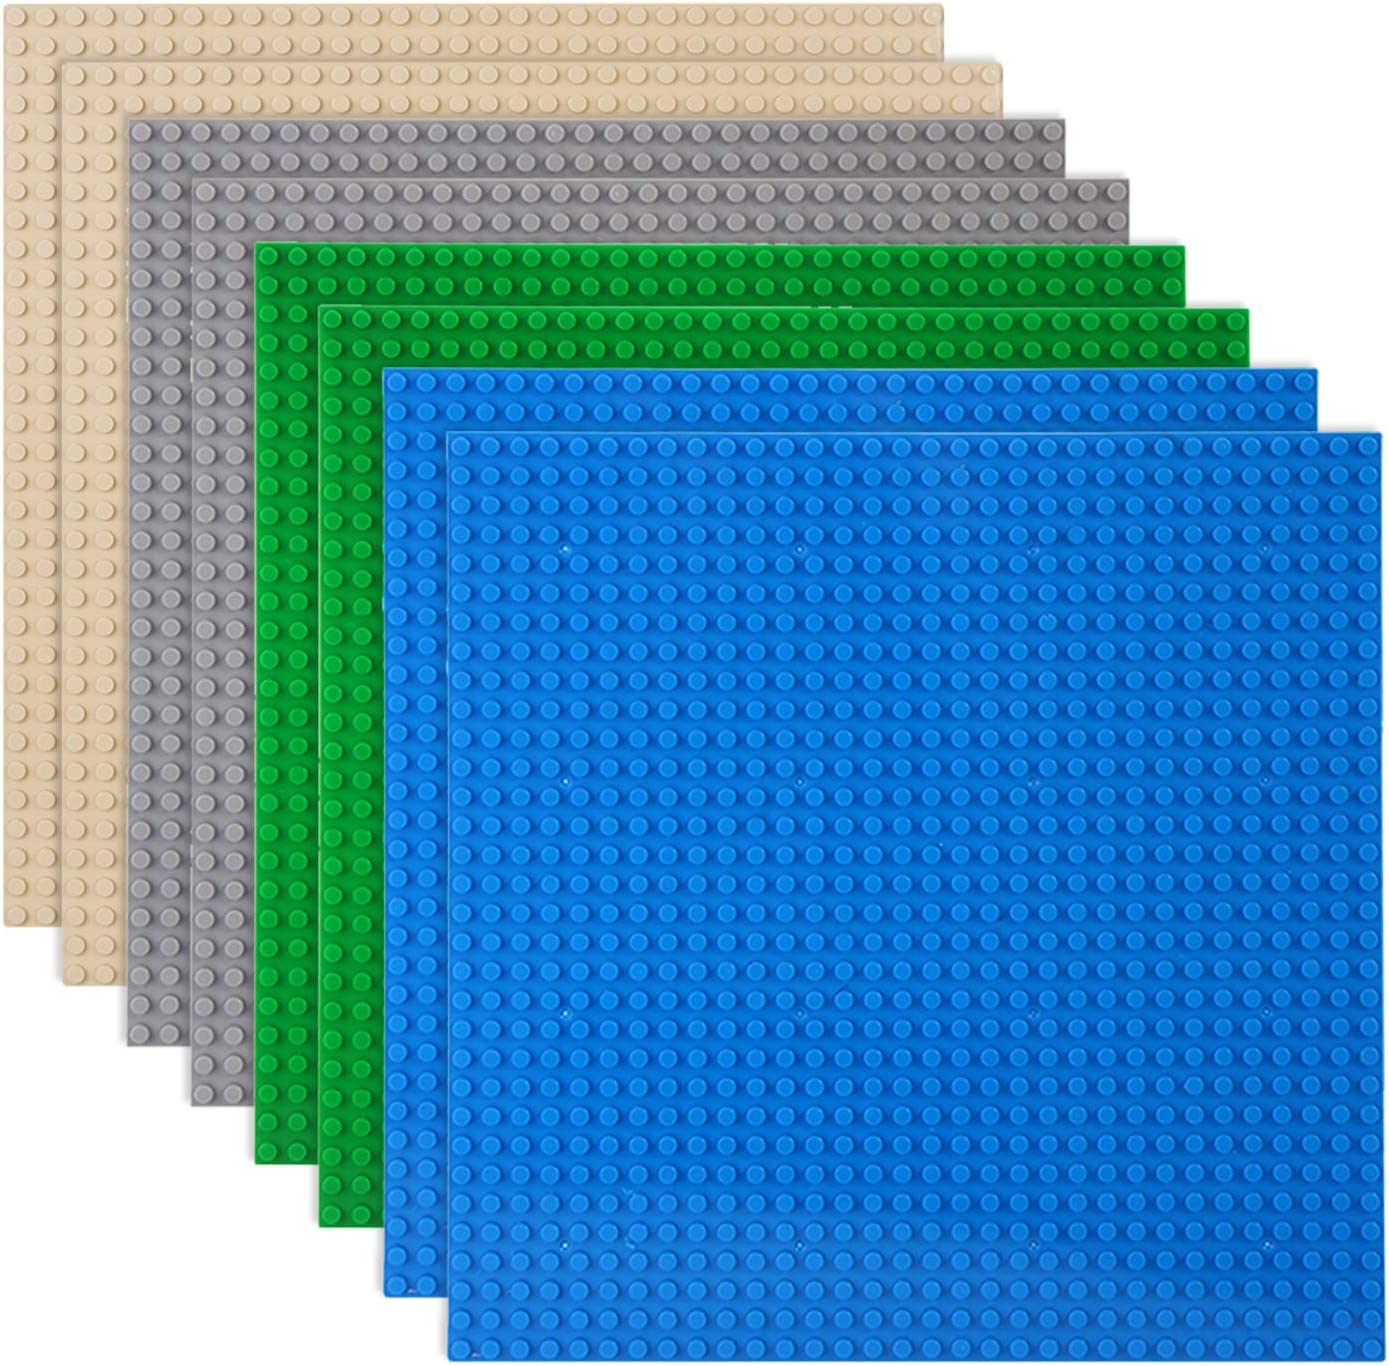 Classic Baseplates Building Plates Bricks Comp Daily bargain sale 100% for Mesa Mall